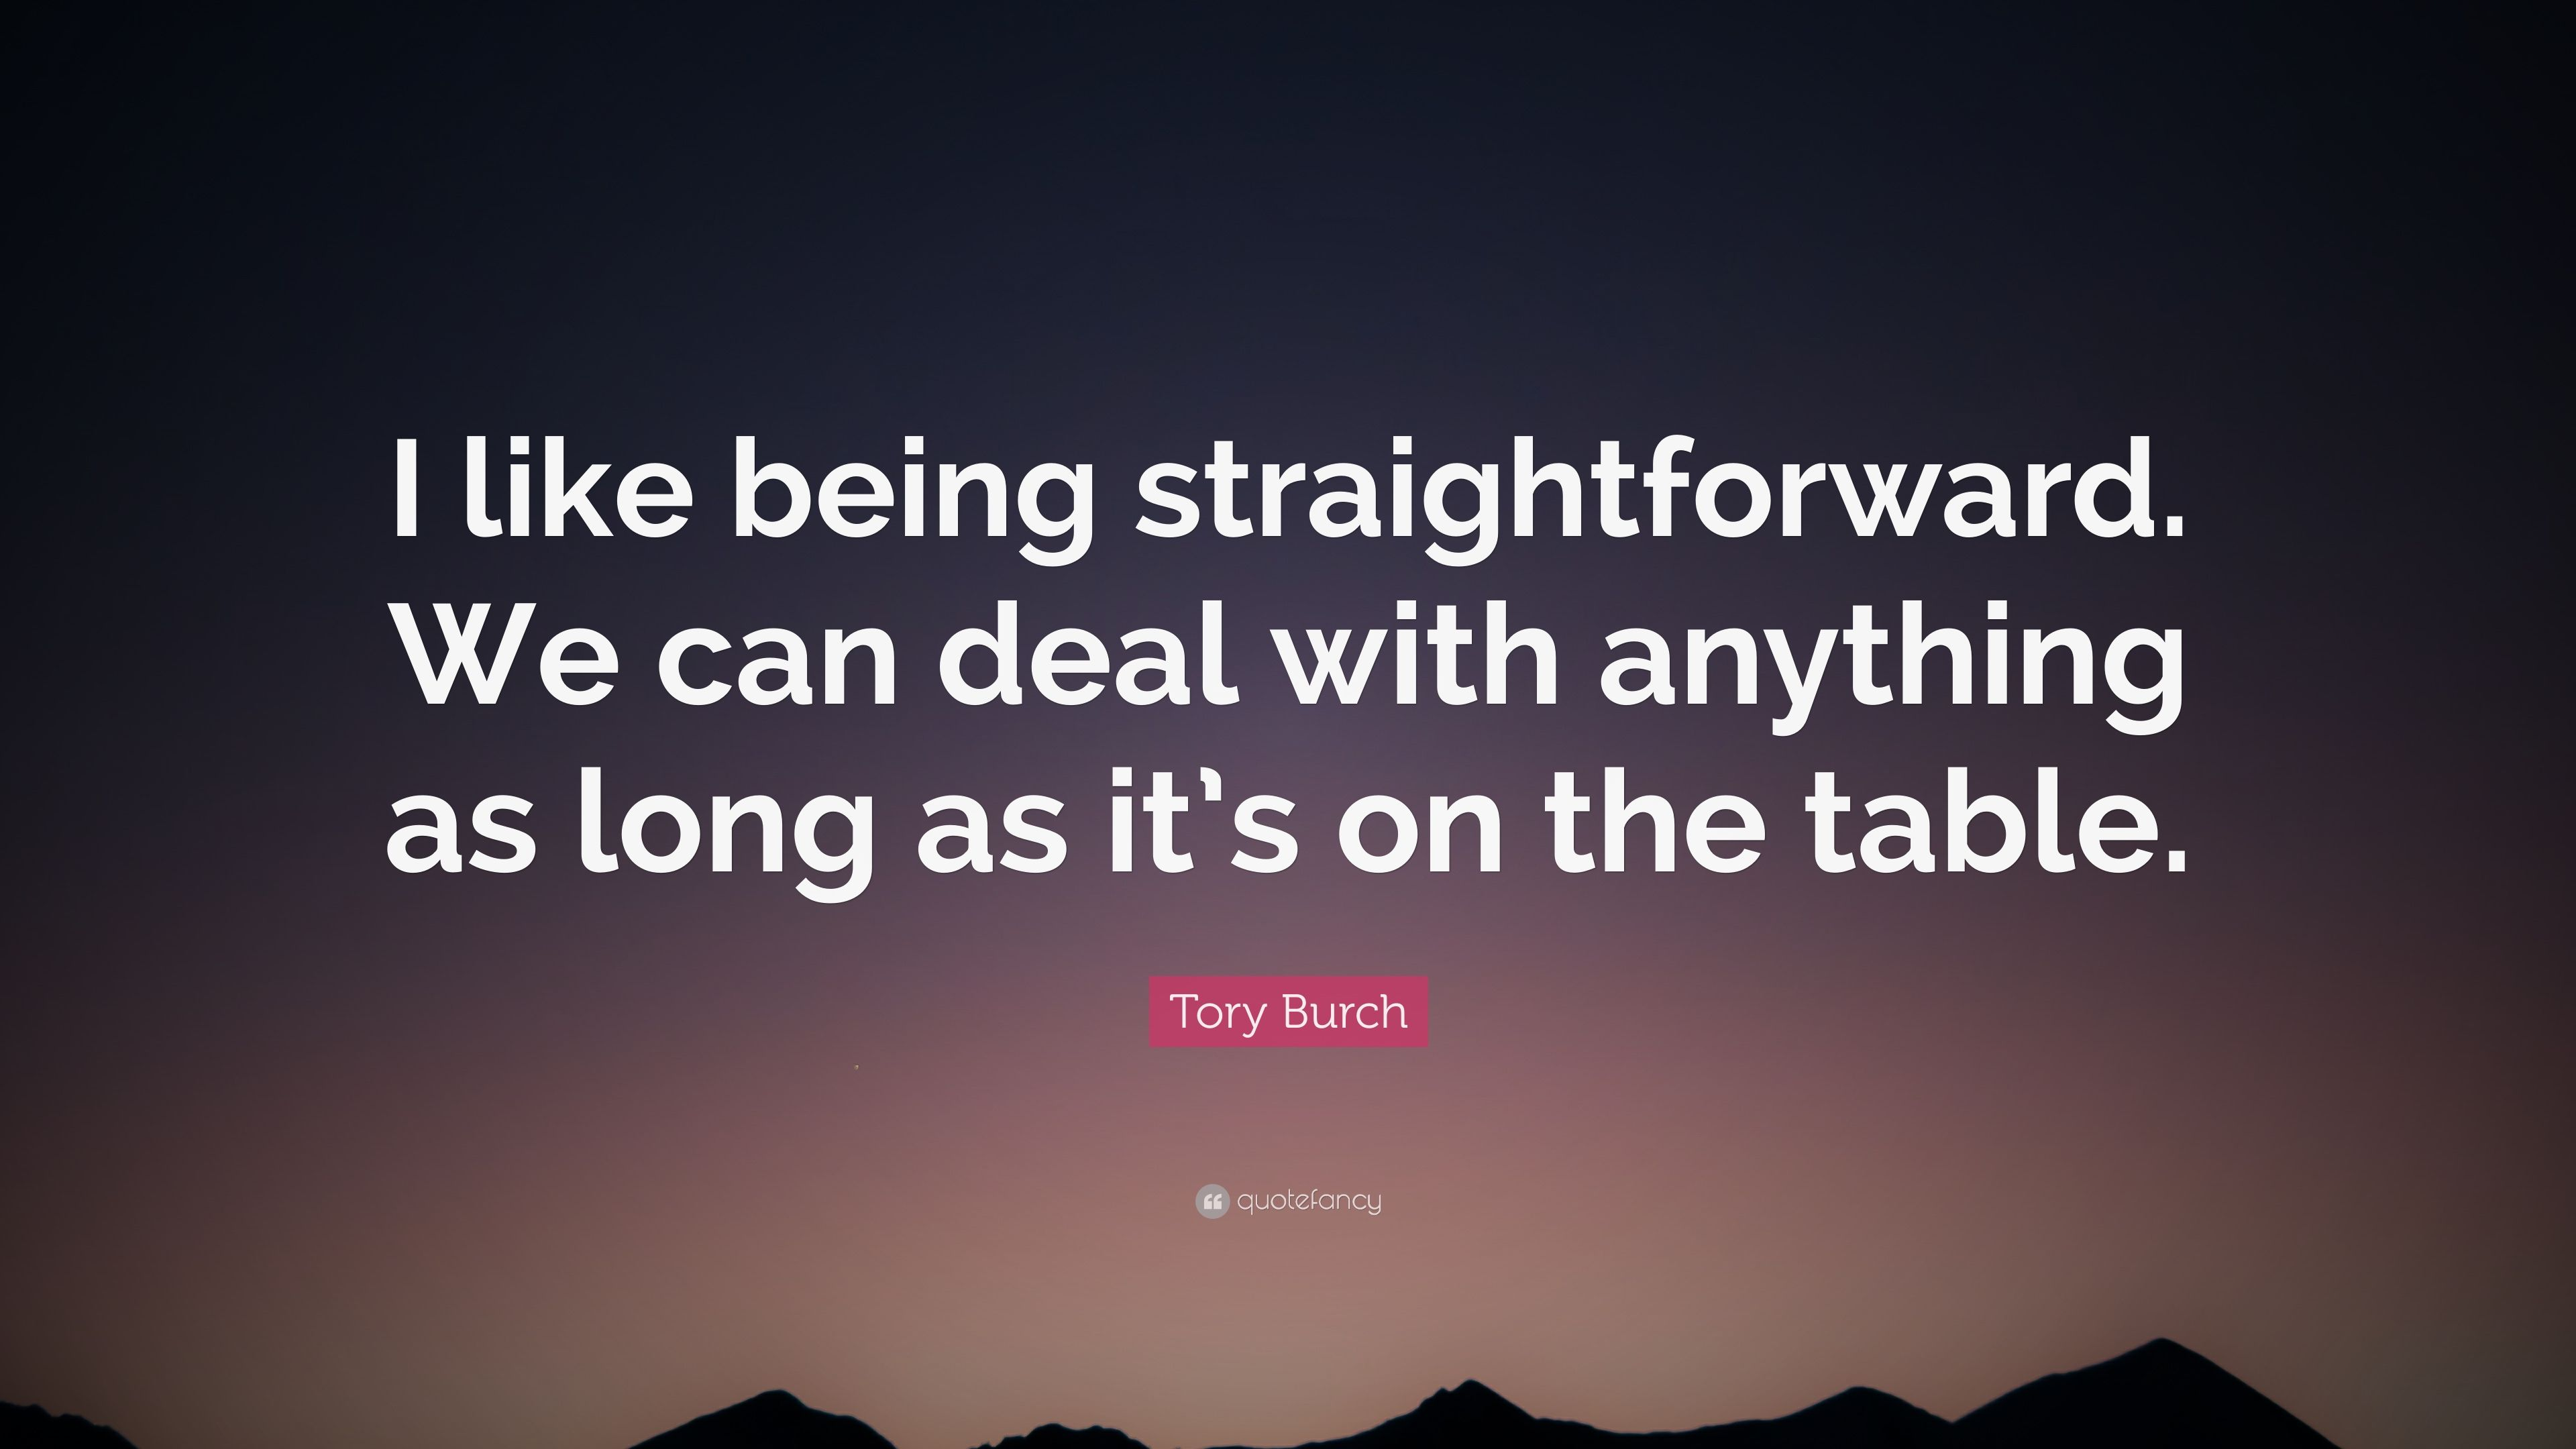 Tory Burch Quote I Like Being Straightforward We Can Deal With Anything As Long As It S On The Table 7 Wallpapers Quotefancy